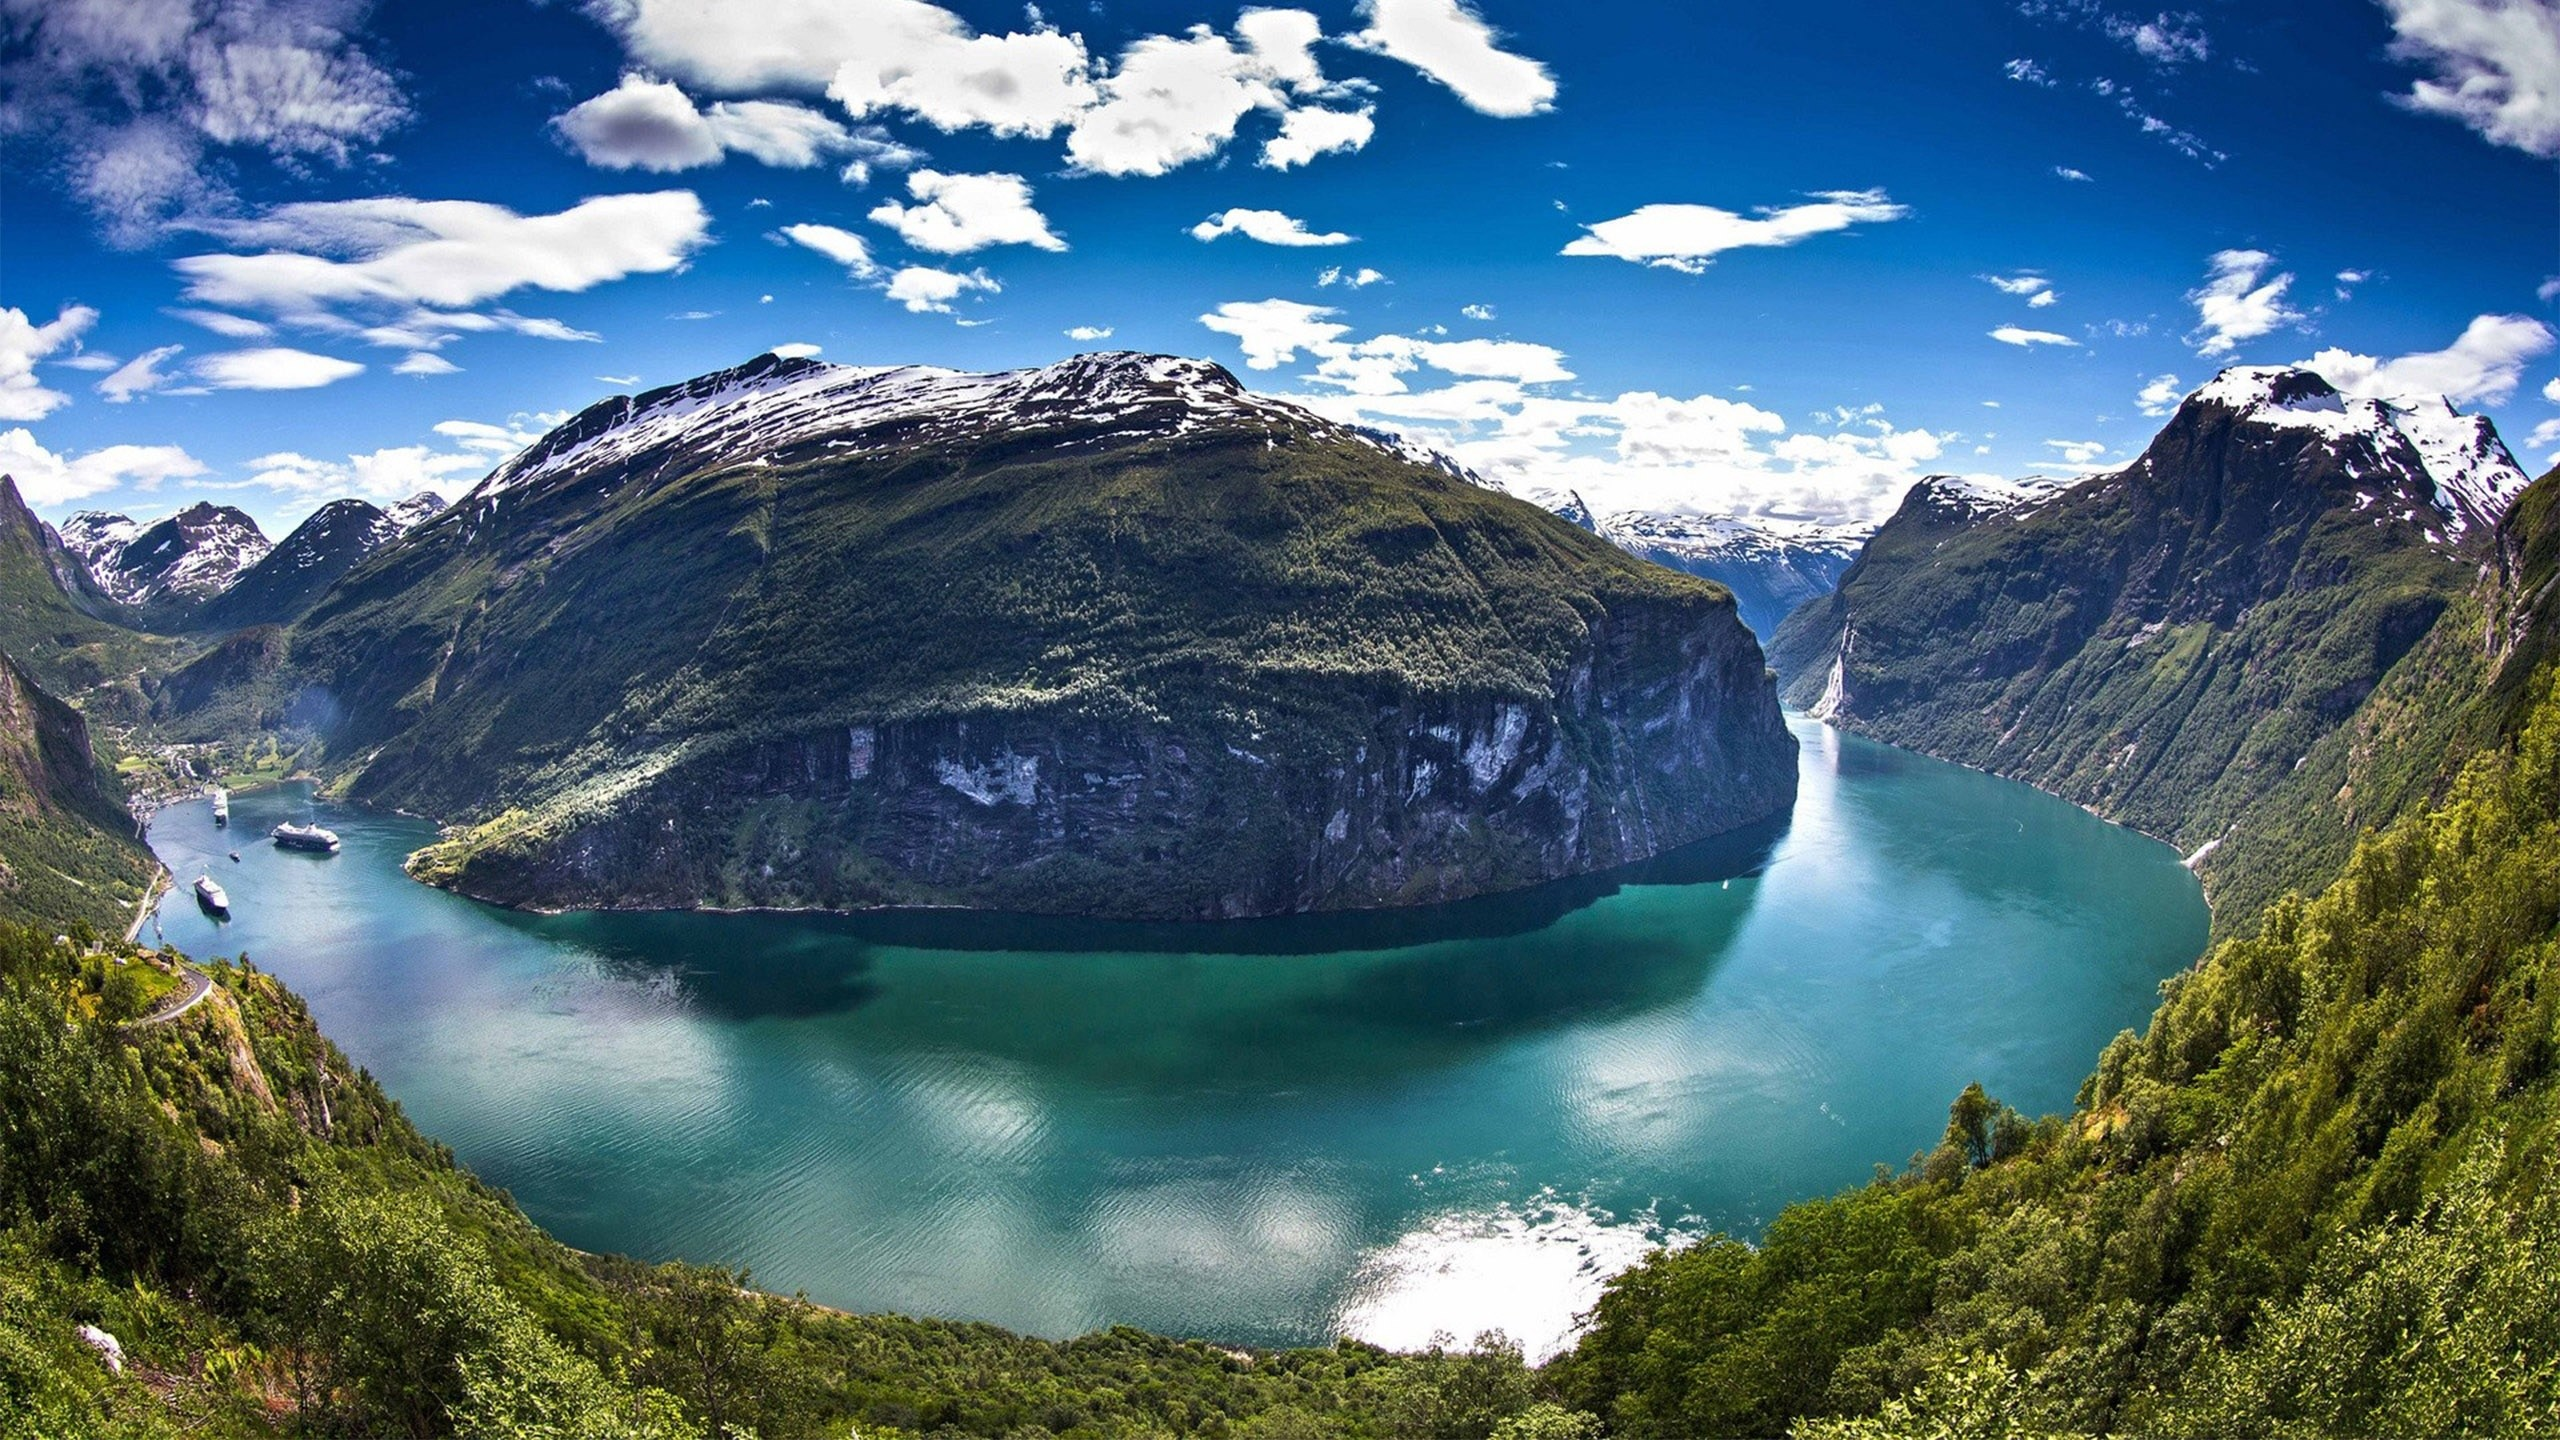 Geirangerfjord's Fjord In The Sunnmore Region Of The Romsdal Norway  District Desktop Wallpaper Hd : Wallpapers13.com